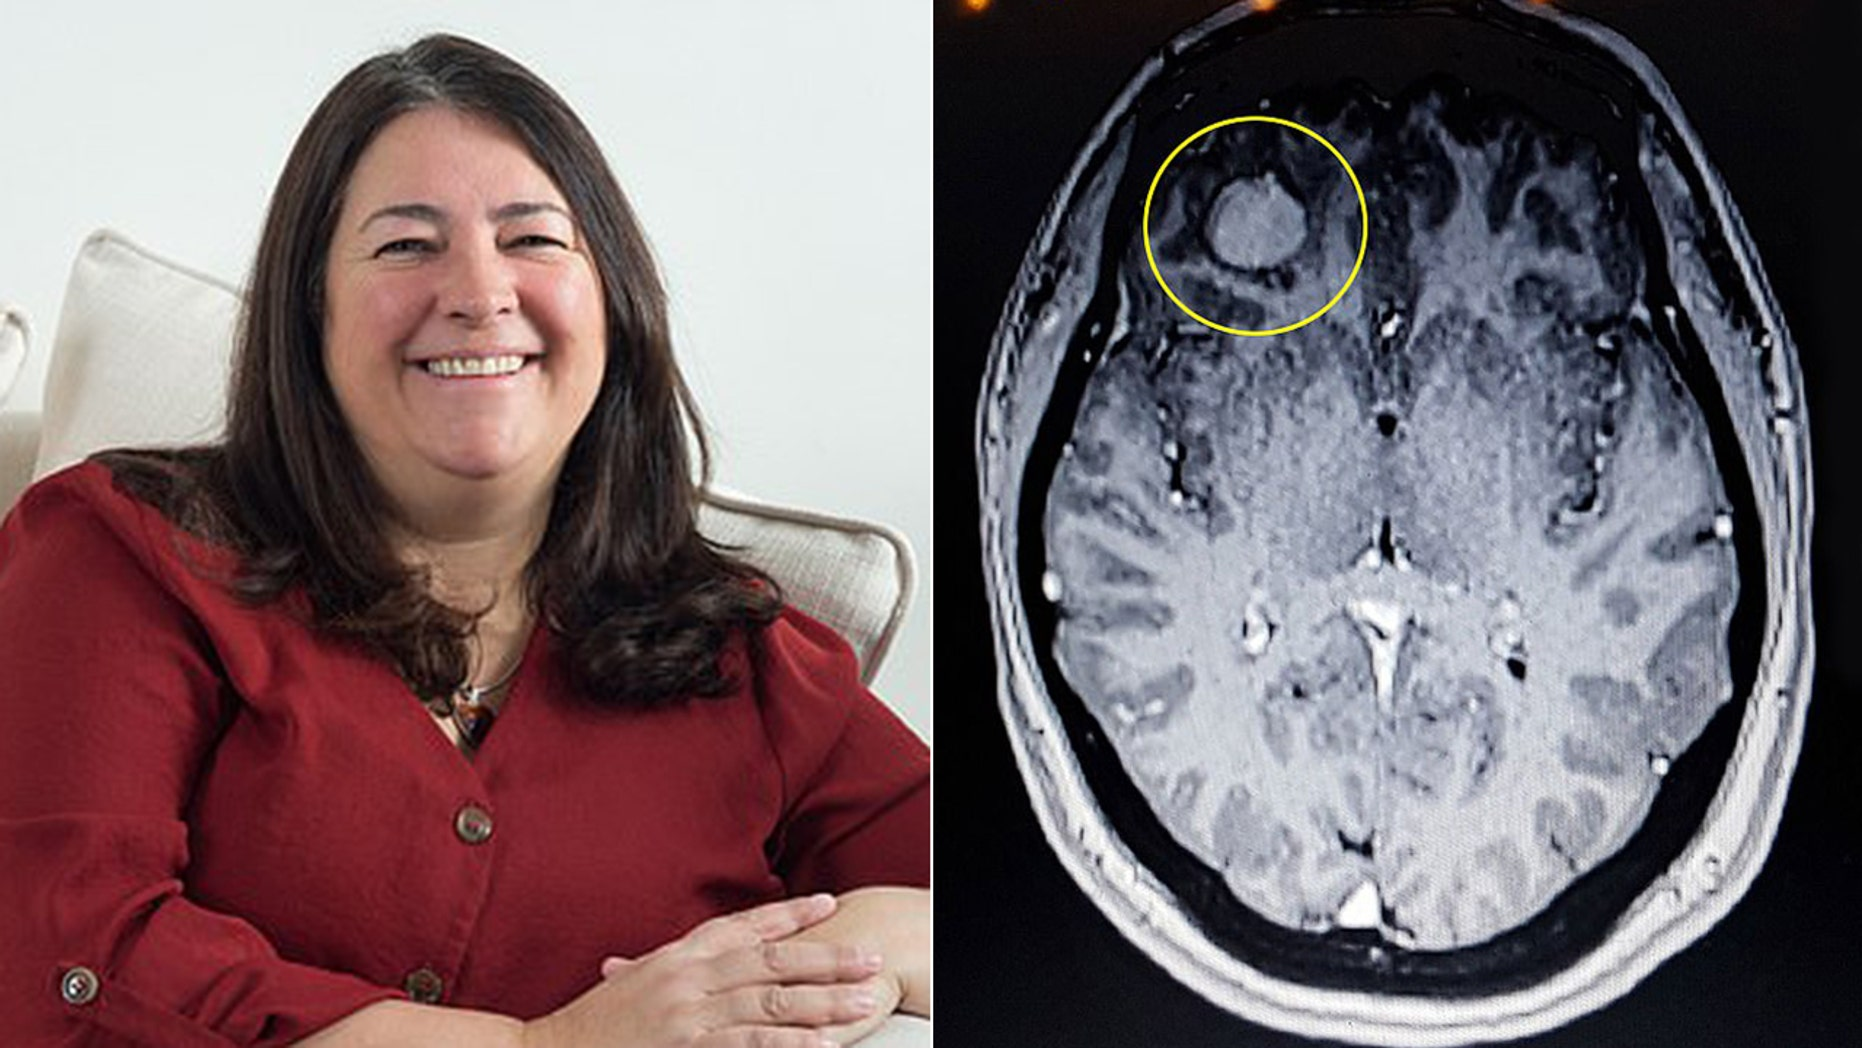 Elaine Lee-Tubby said she went for the MRI to investigate severe headaches following a 2017 car accident, which revealed a tumor had been growing behind her eye.